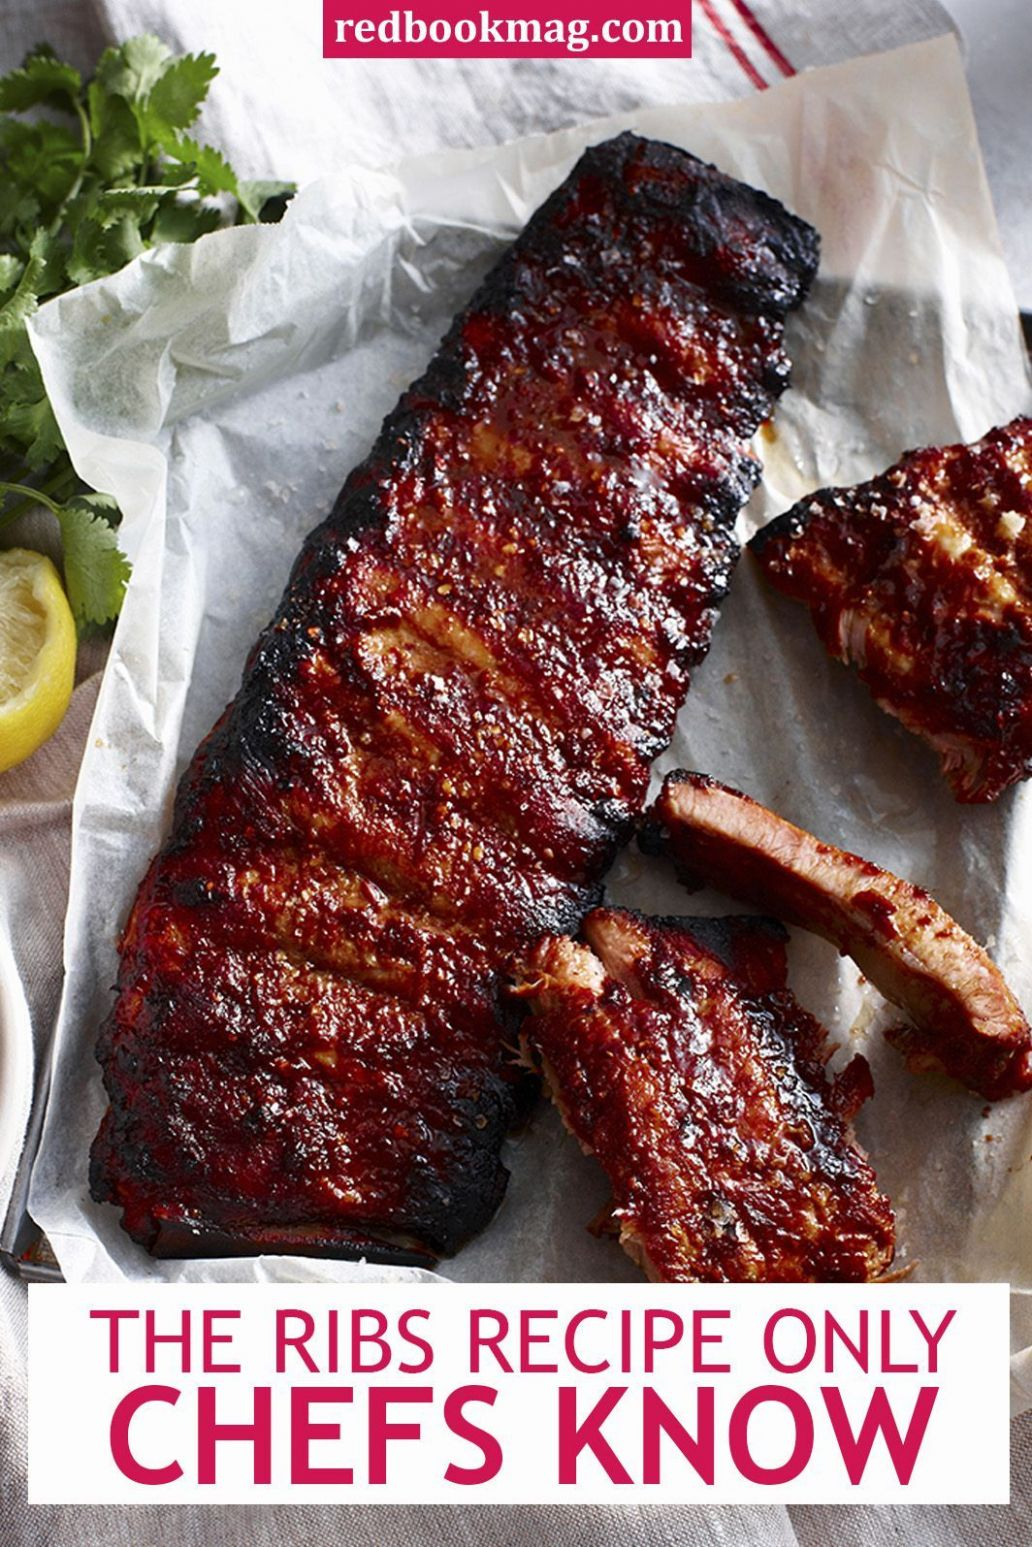 The Ribs Recipe Only Chefs Knew...Until Now | Rib recipes, Best ..